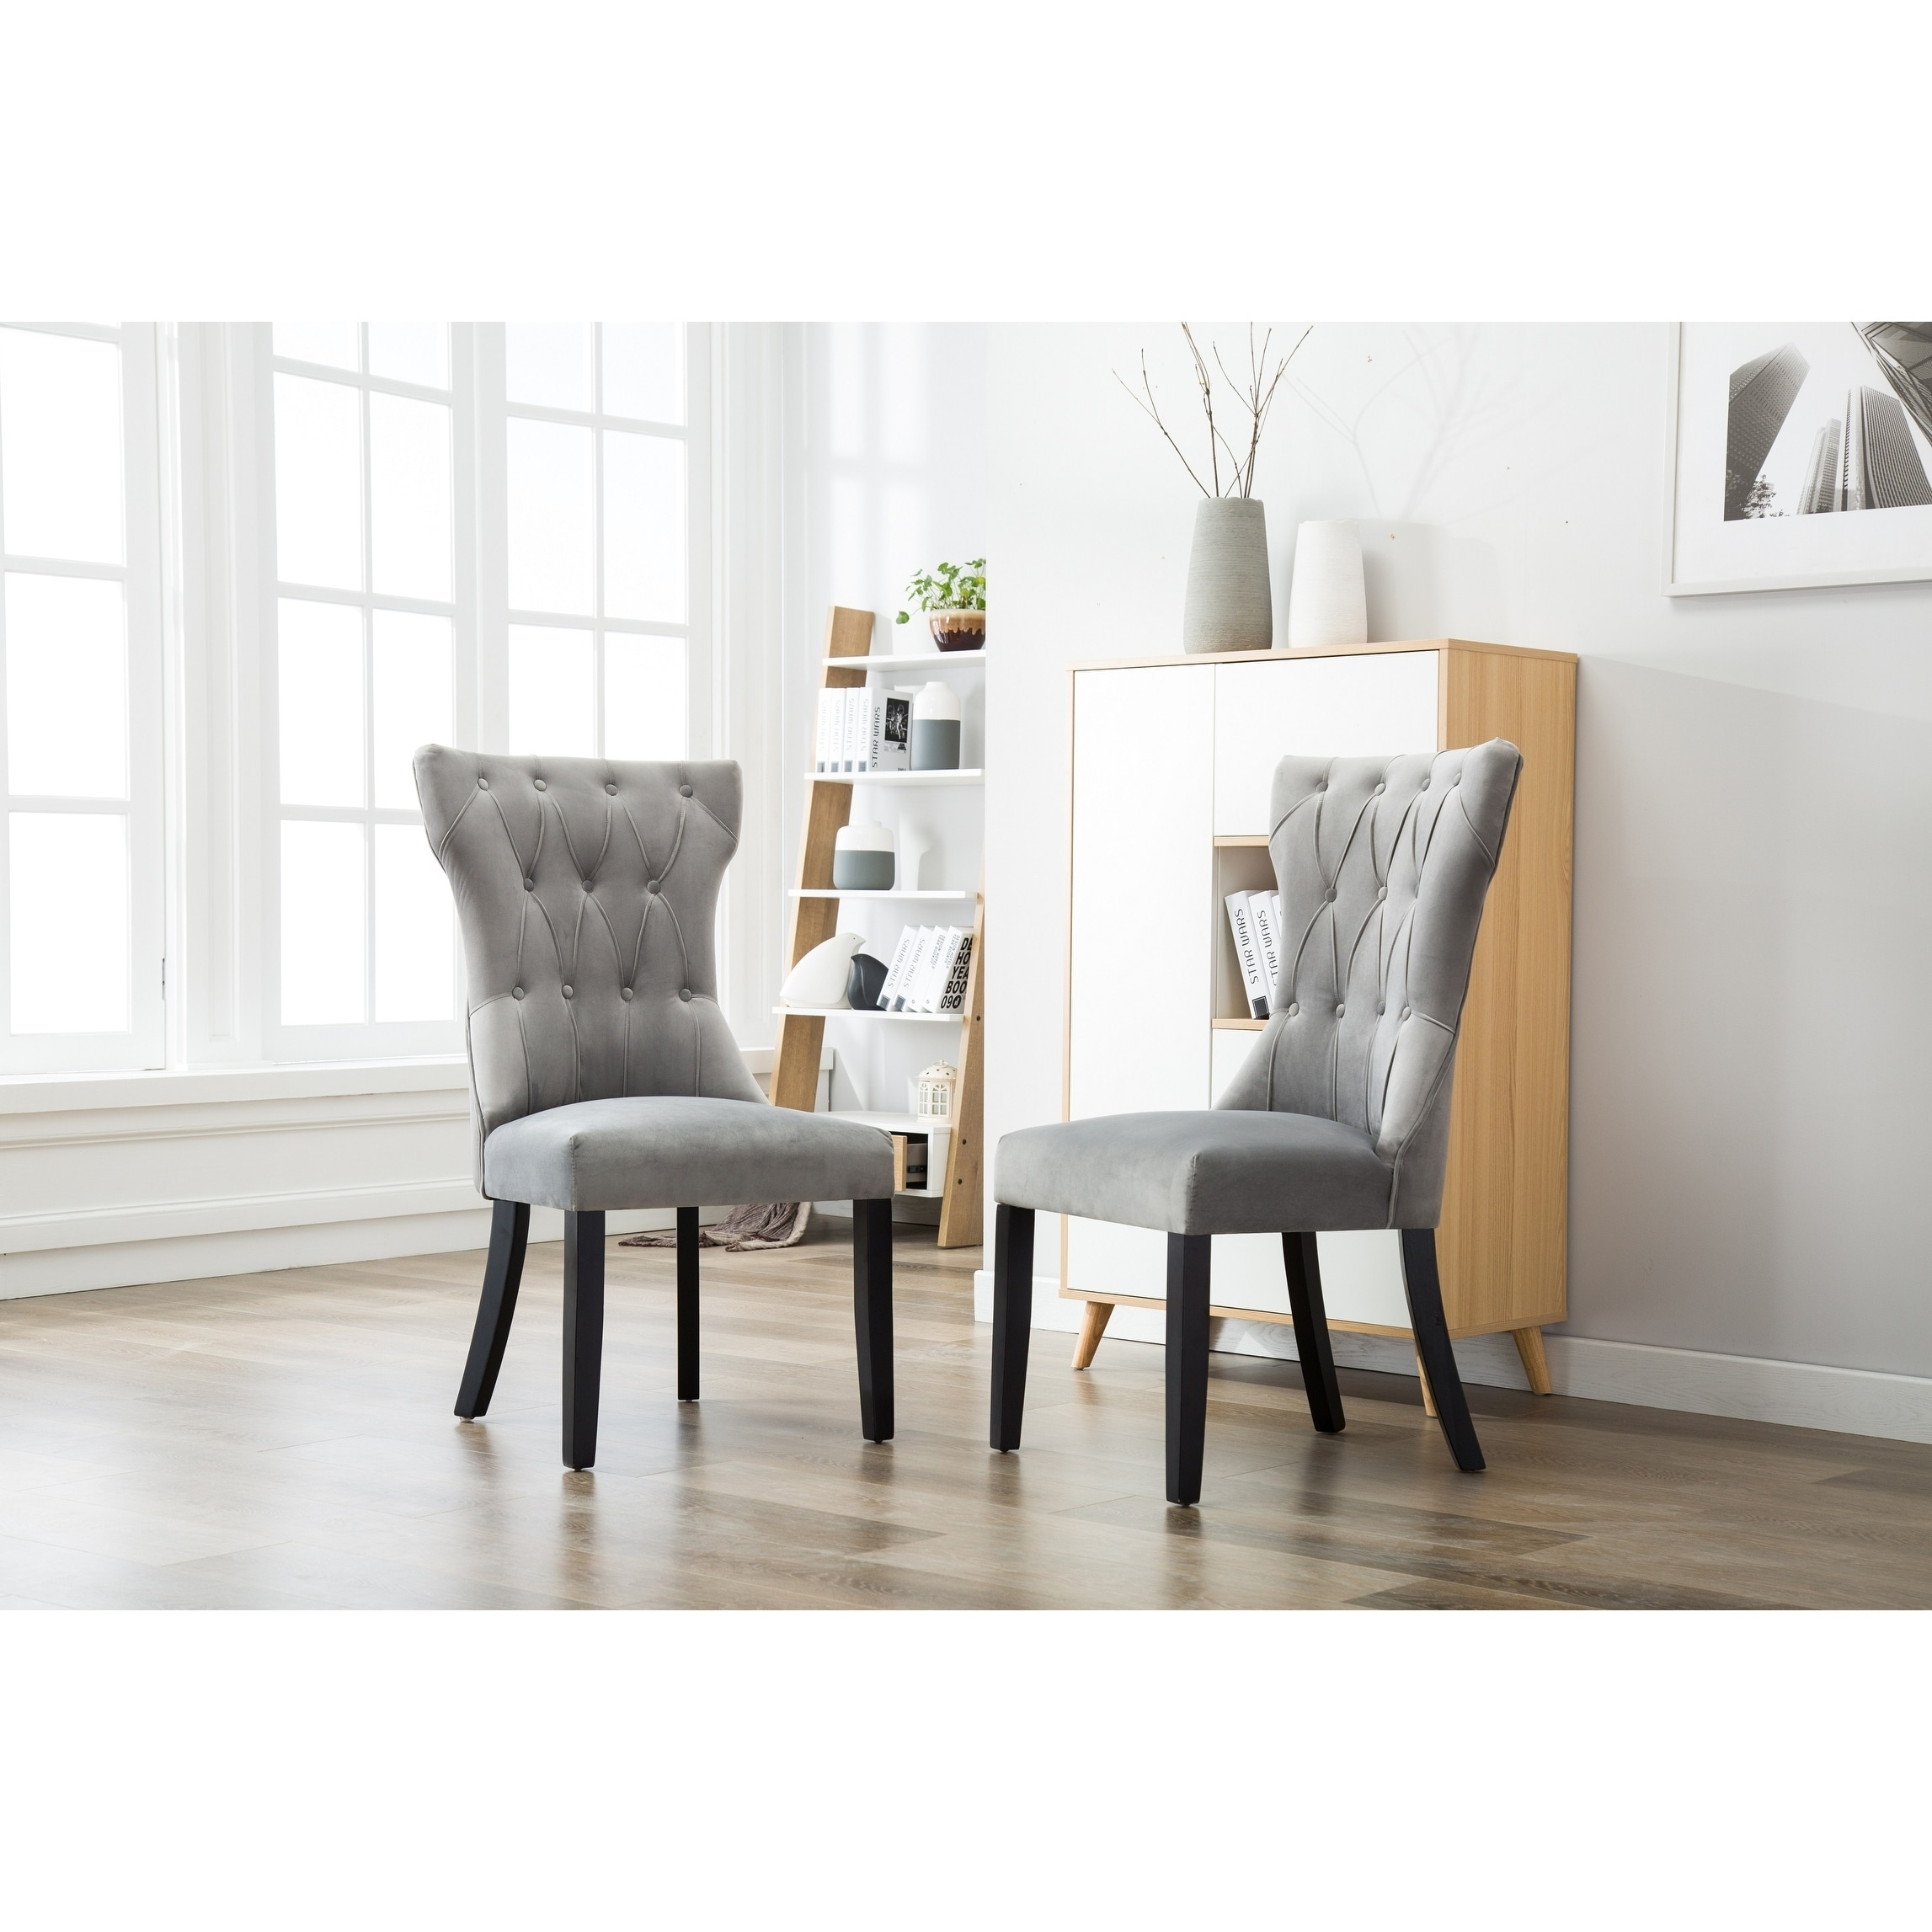 Reims Velvet Tufted Upholstered Solid Wood Dining Chairs-...